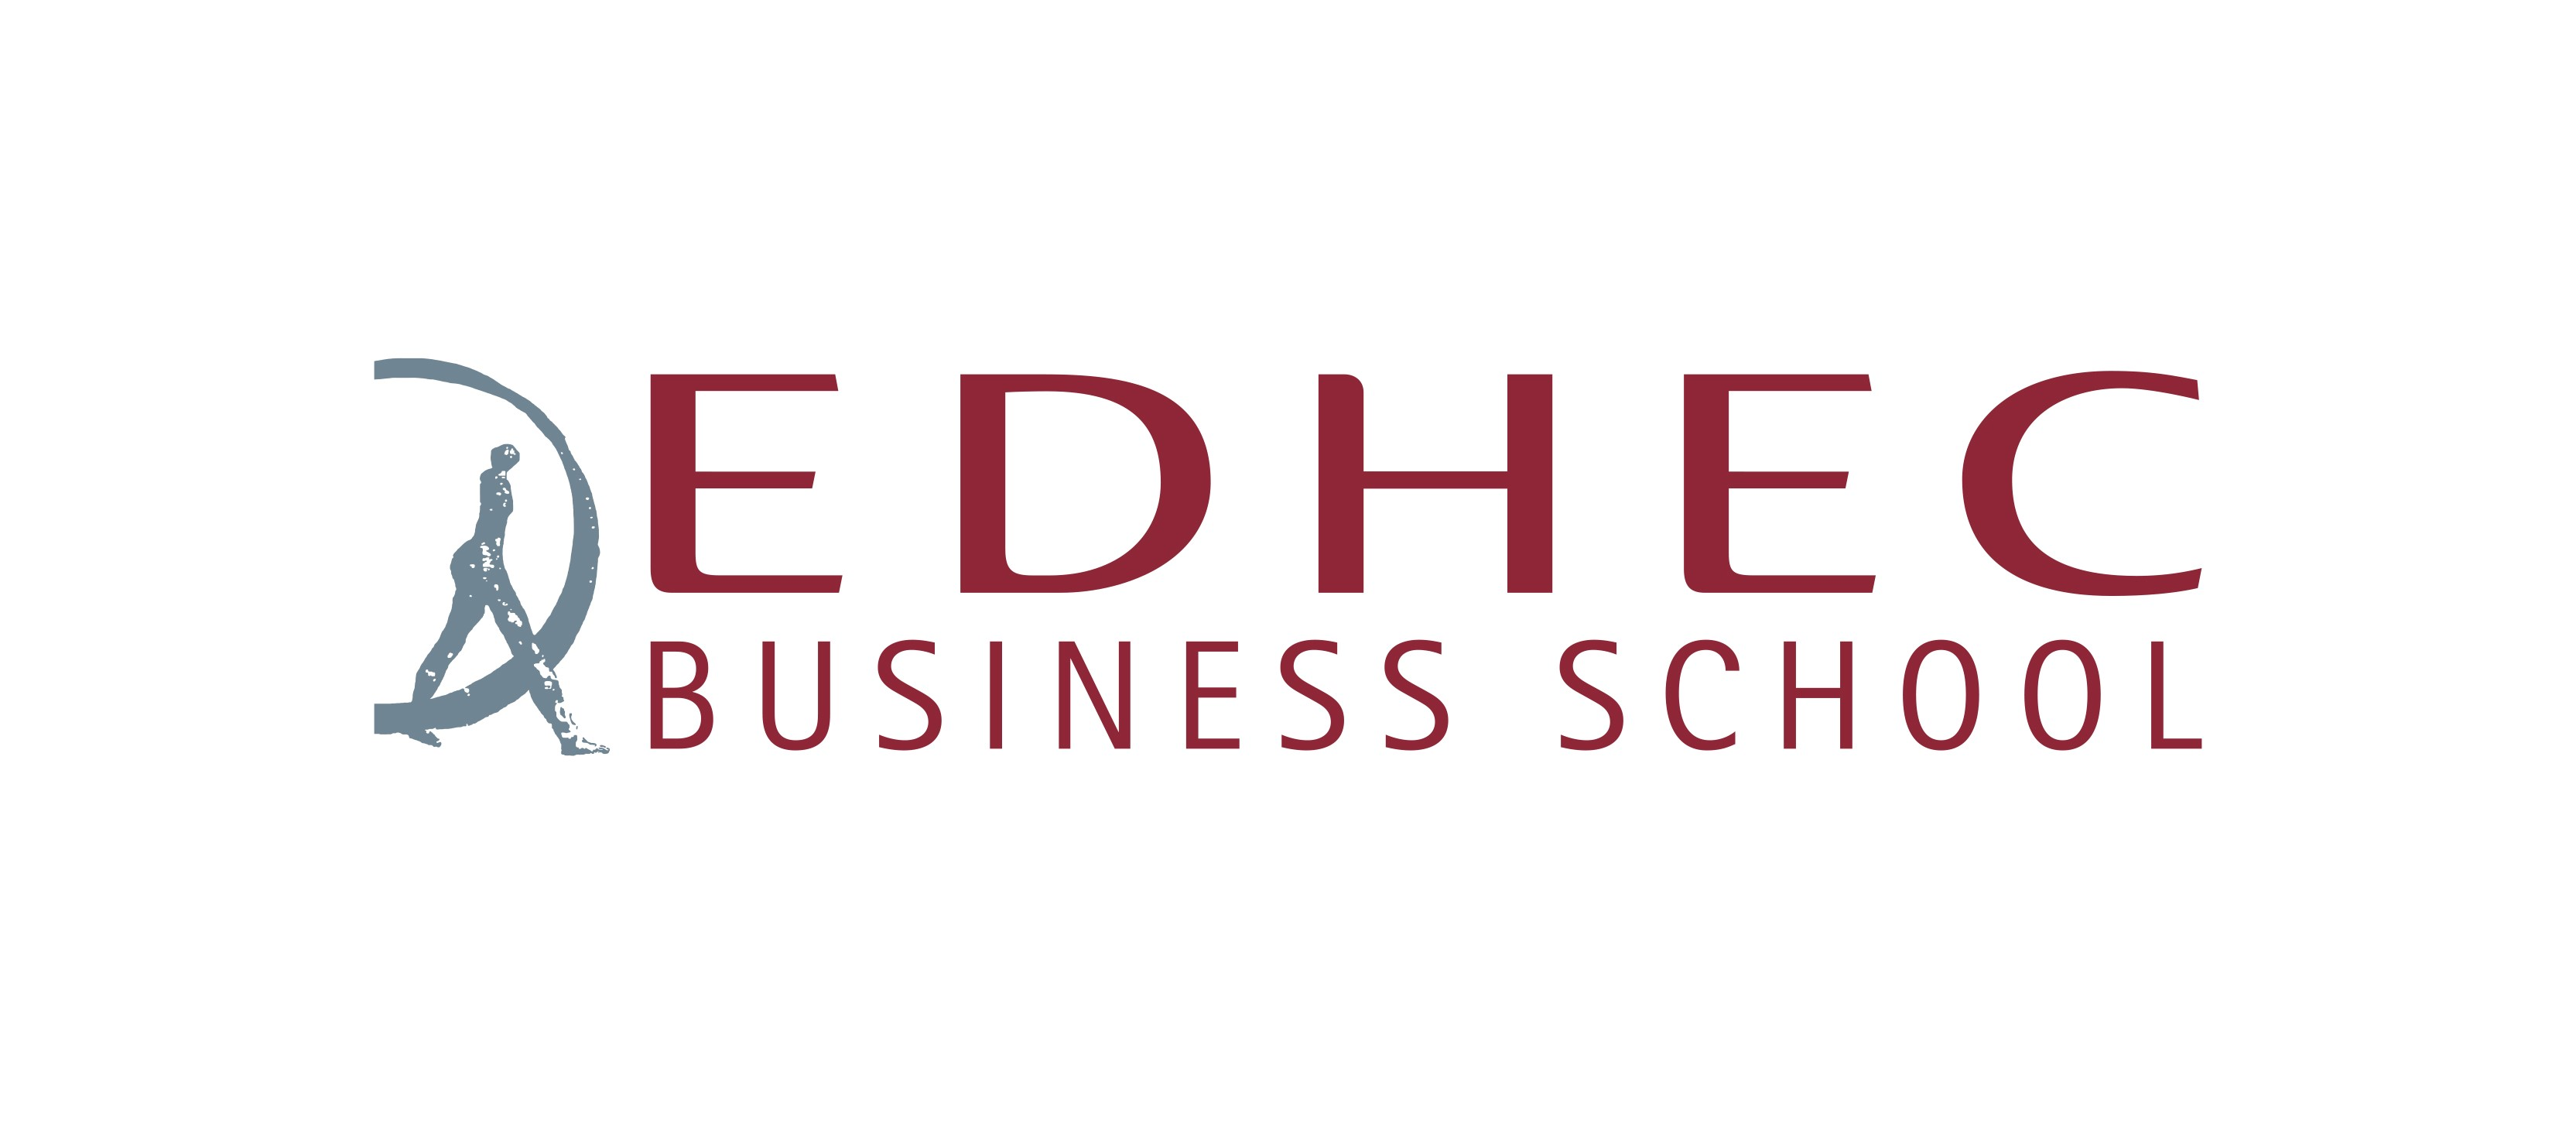 EDHEC - BUSINESS SCHOOL